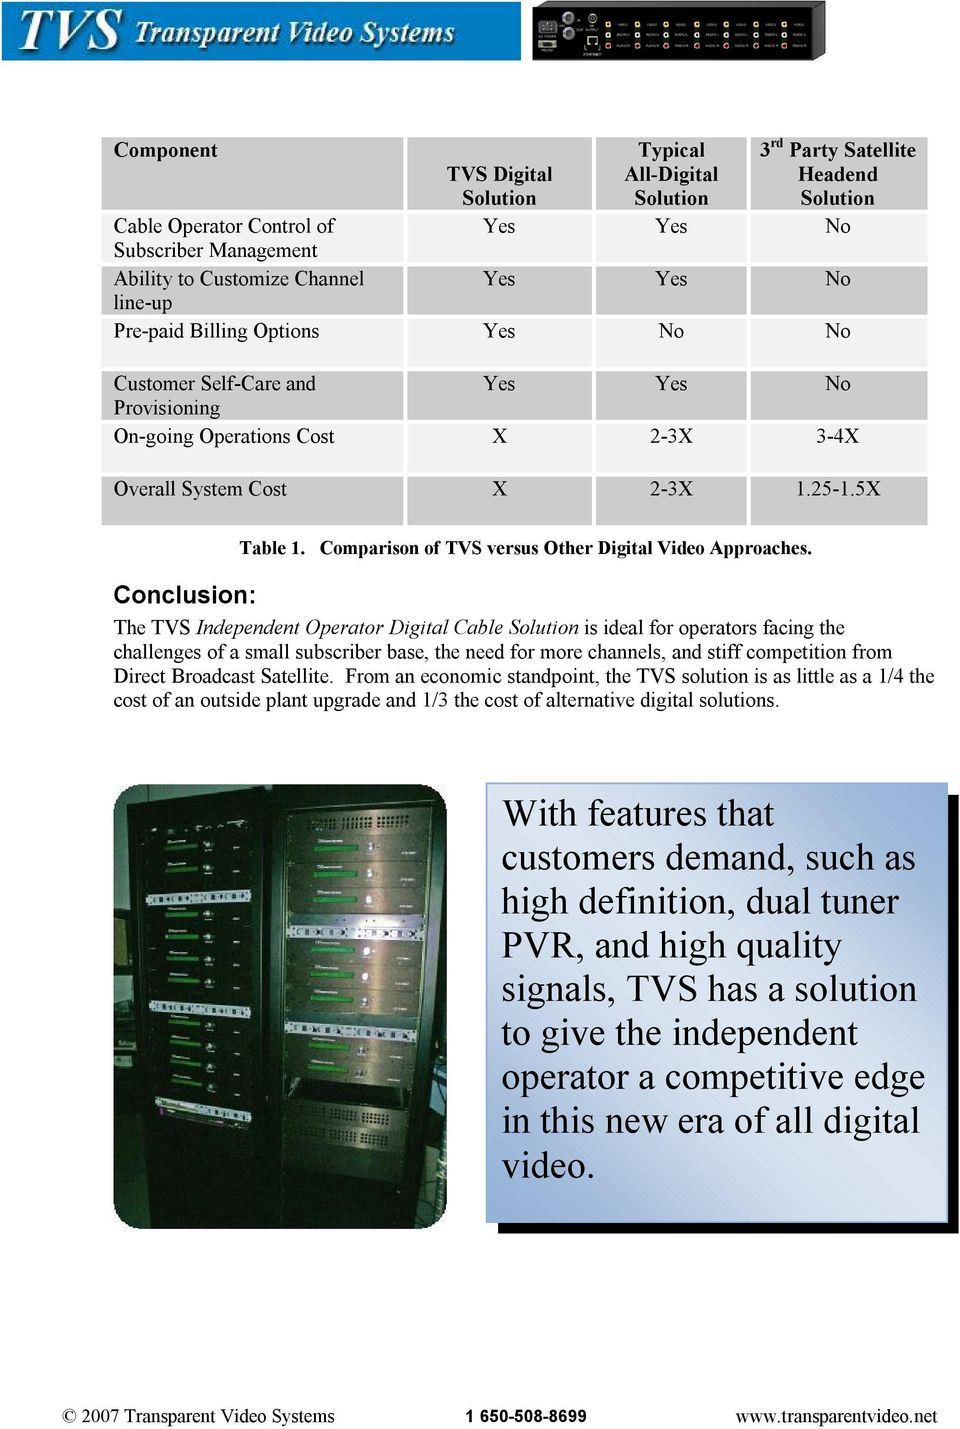 Comparison of TVS versus Other Digital Video Approaches.